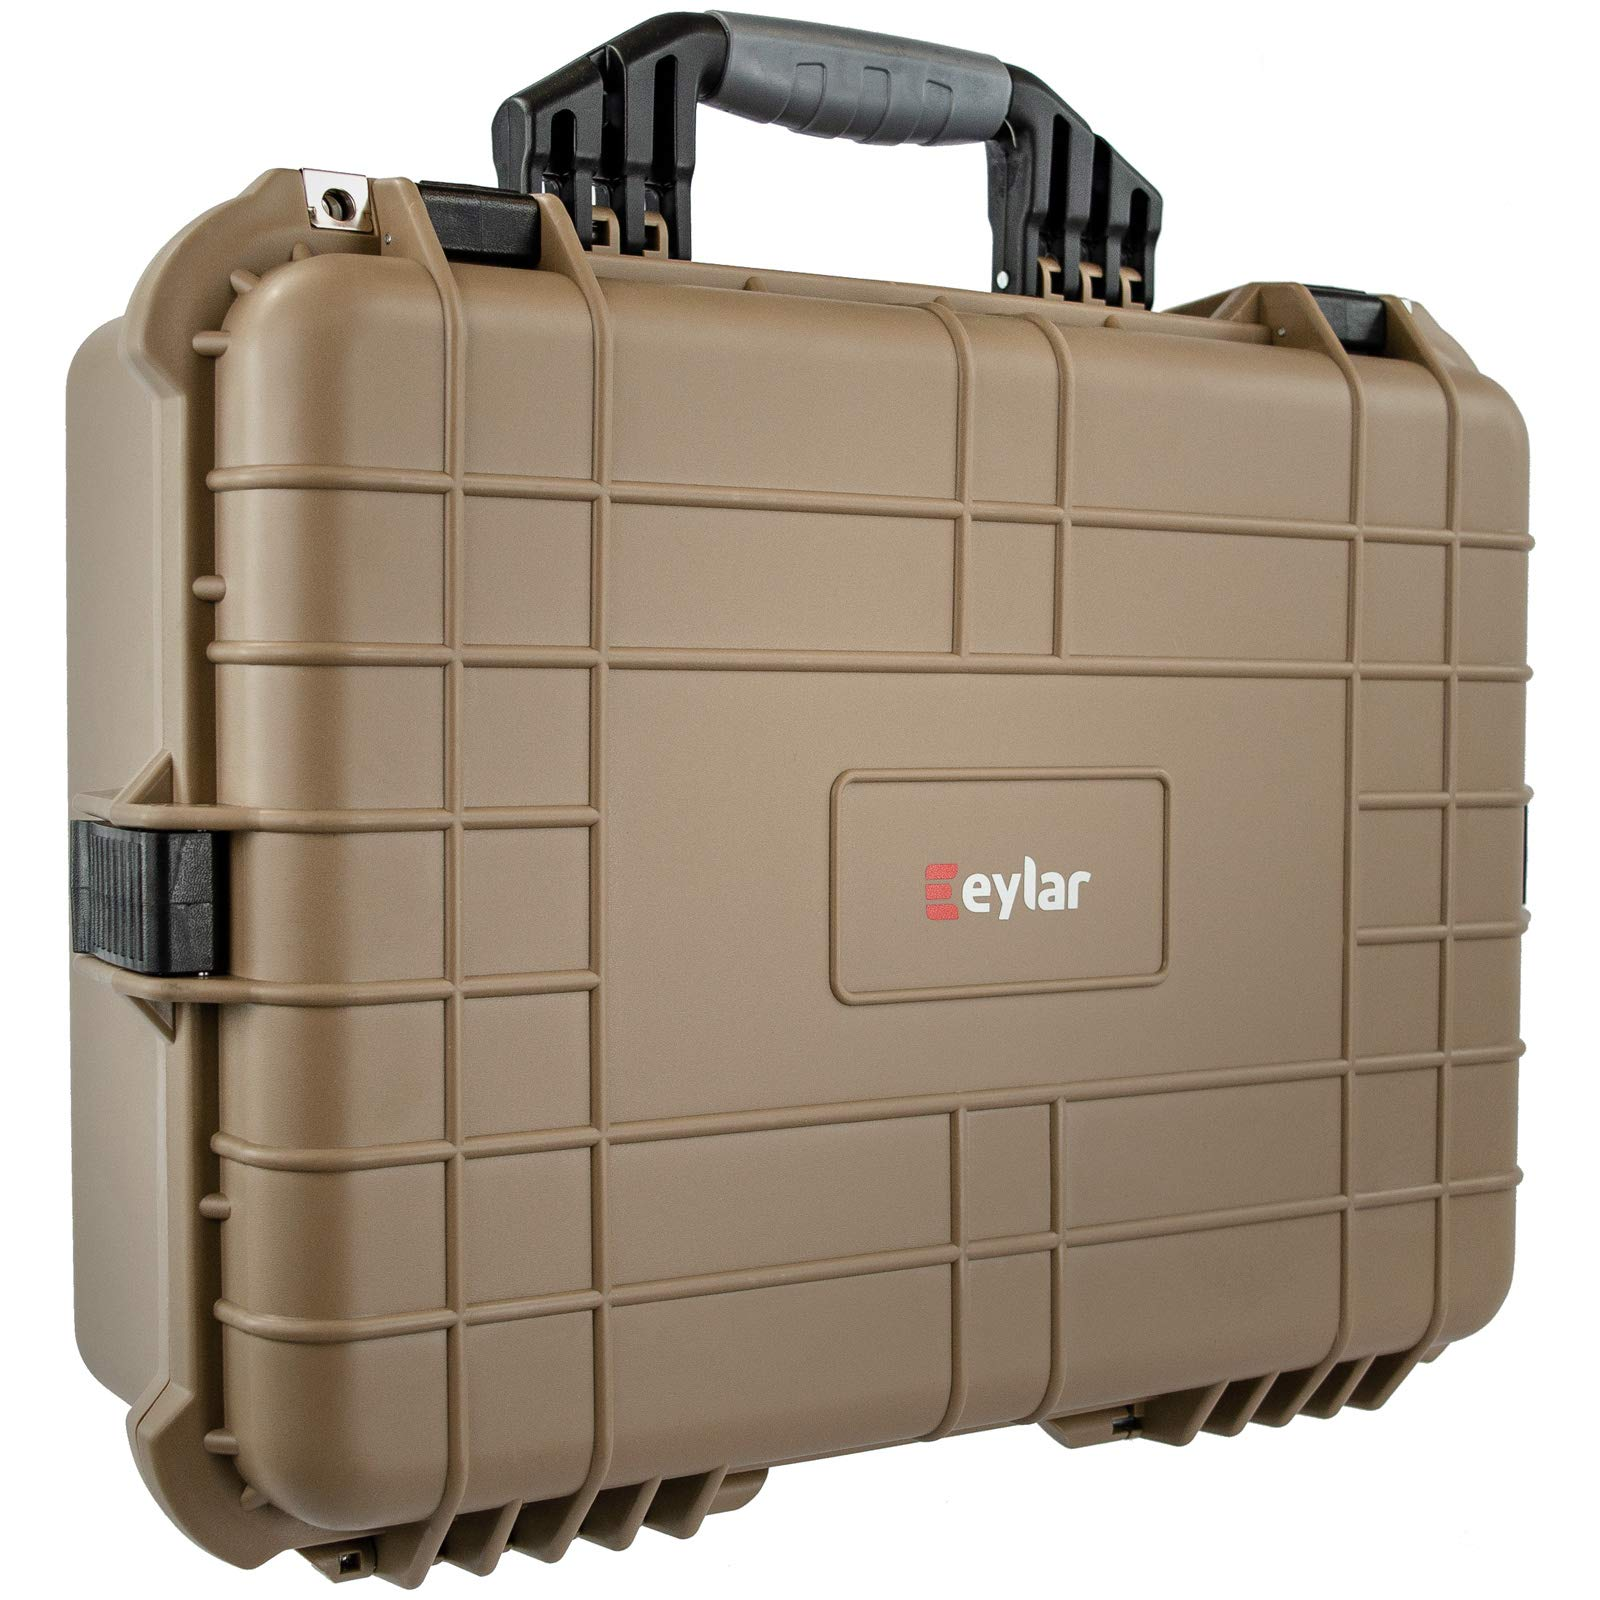 Eylar 20 Inch Large Protective Camera Hard Case Water and Shock Proof with Foam Tan